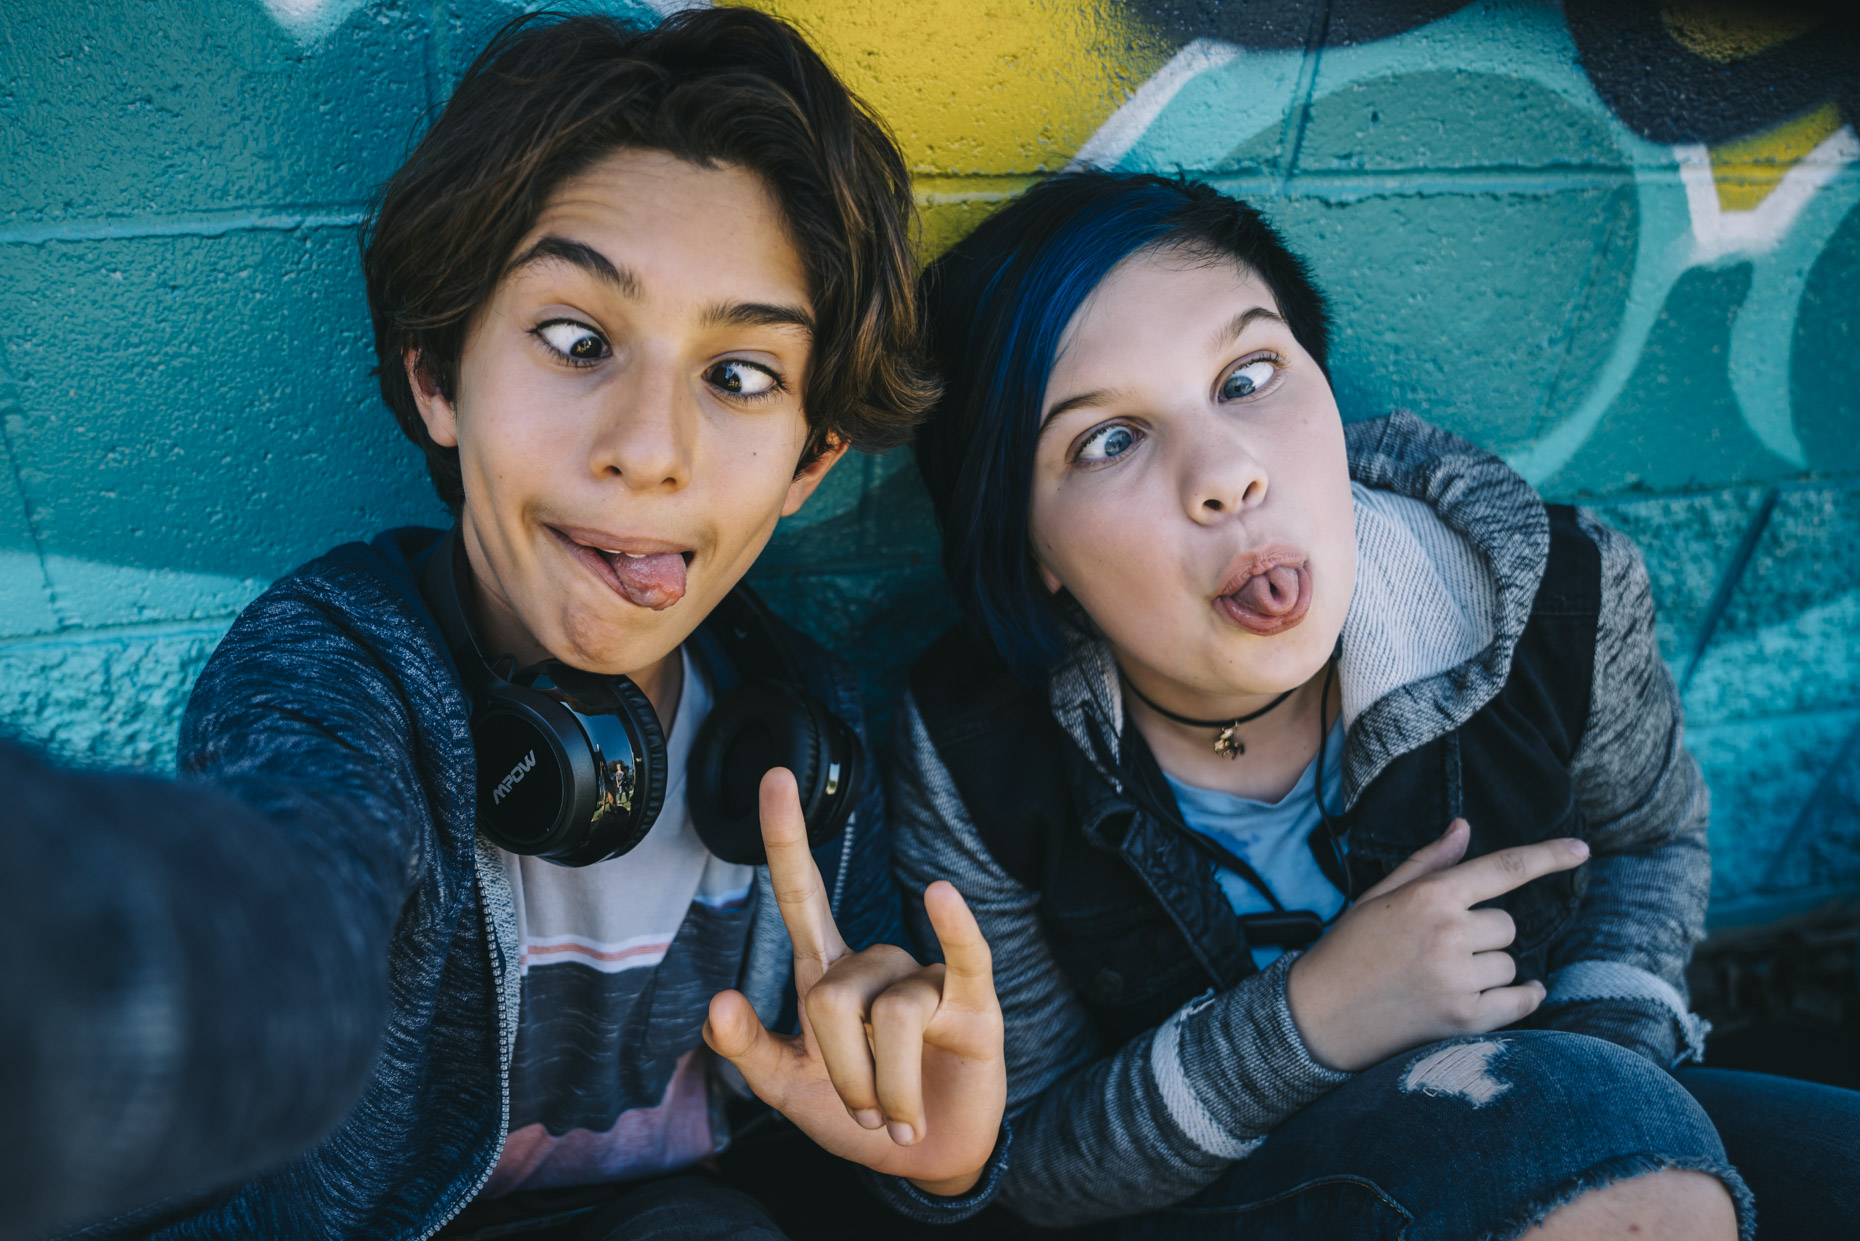 Teens making goofy faces while taking selfie photo